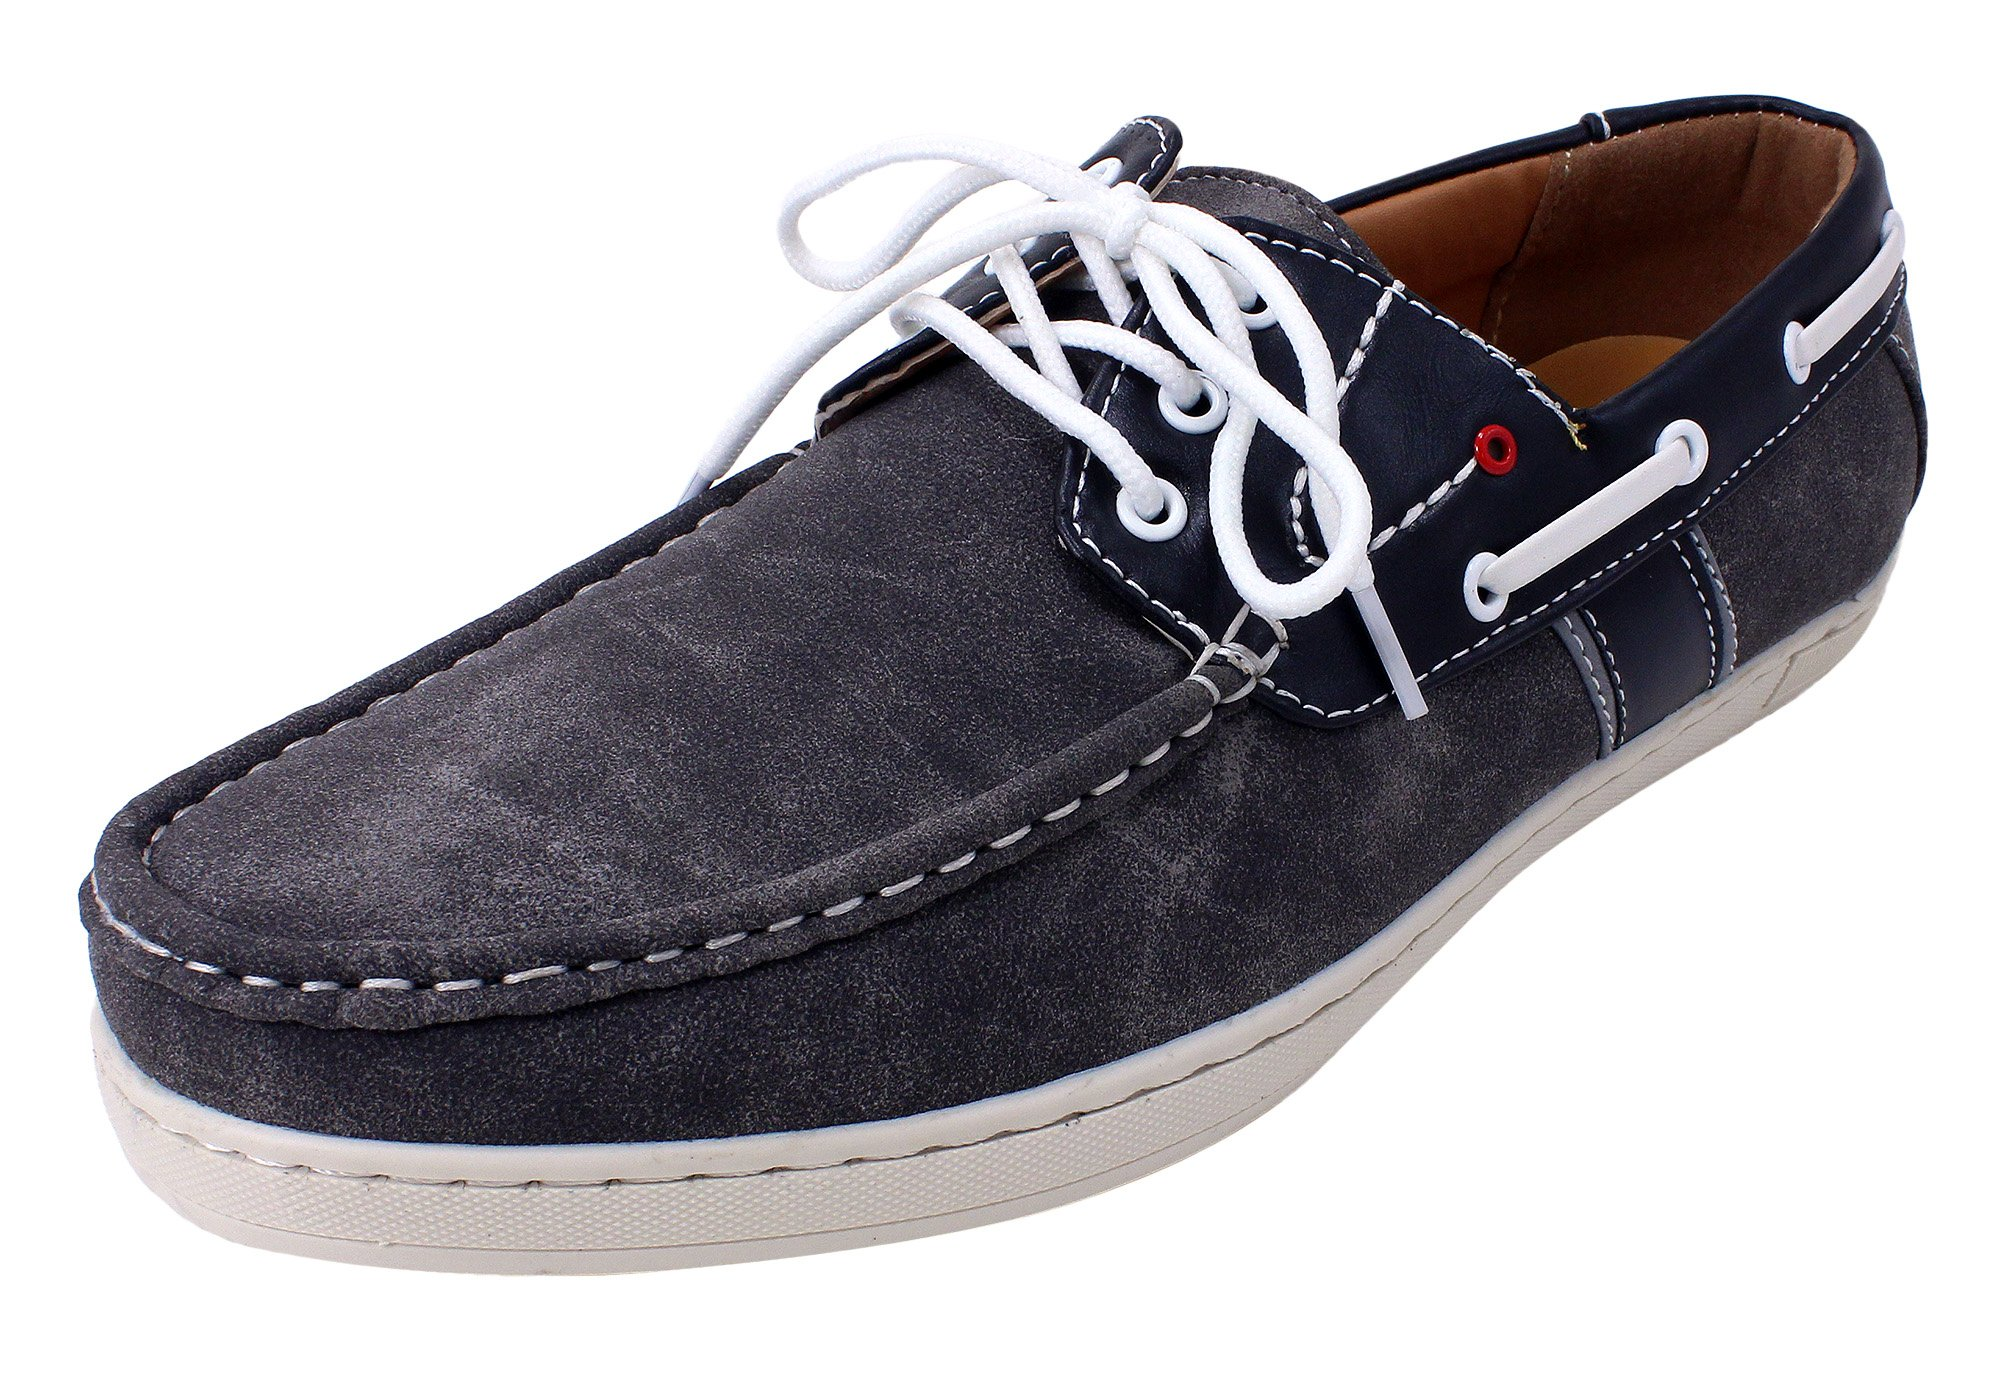 Enimay Men's Free Slip-On Loafer Boat Shoe PU Leather Fine Crafted Lounge Grey Dark Grey 8.5